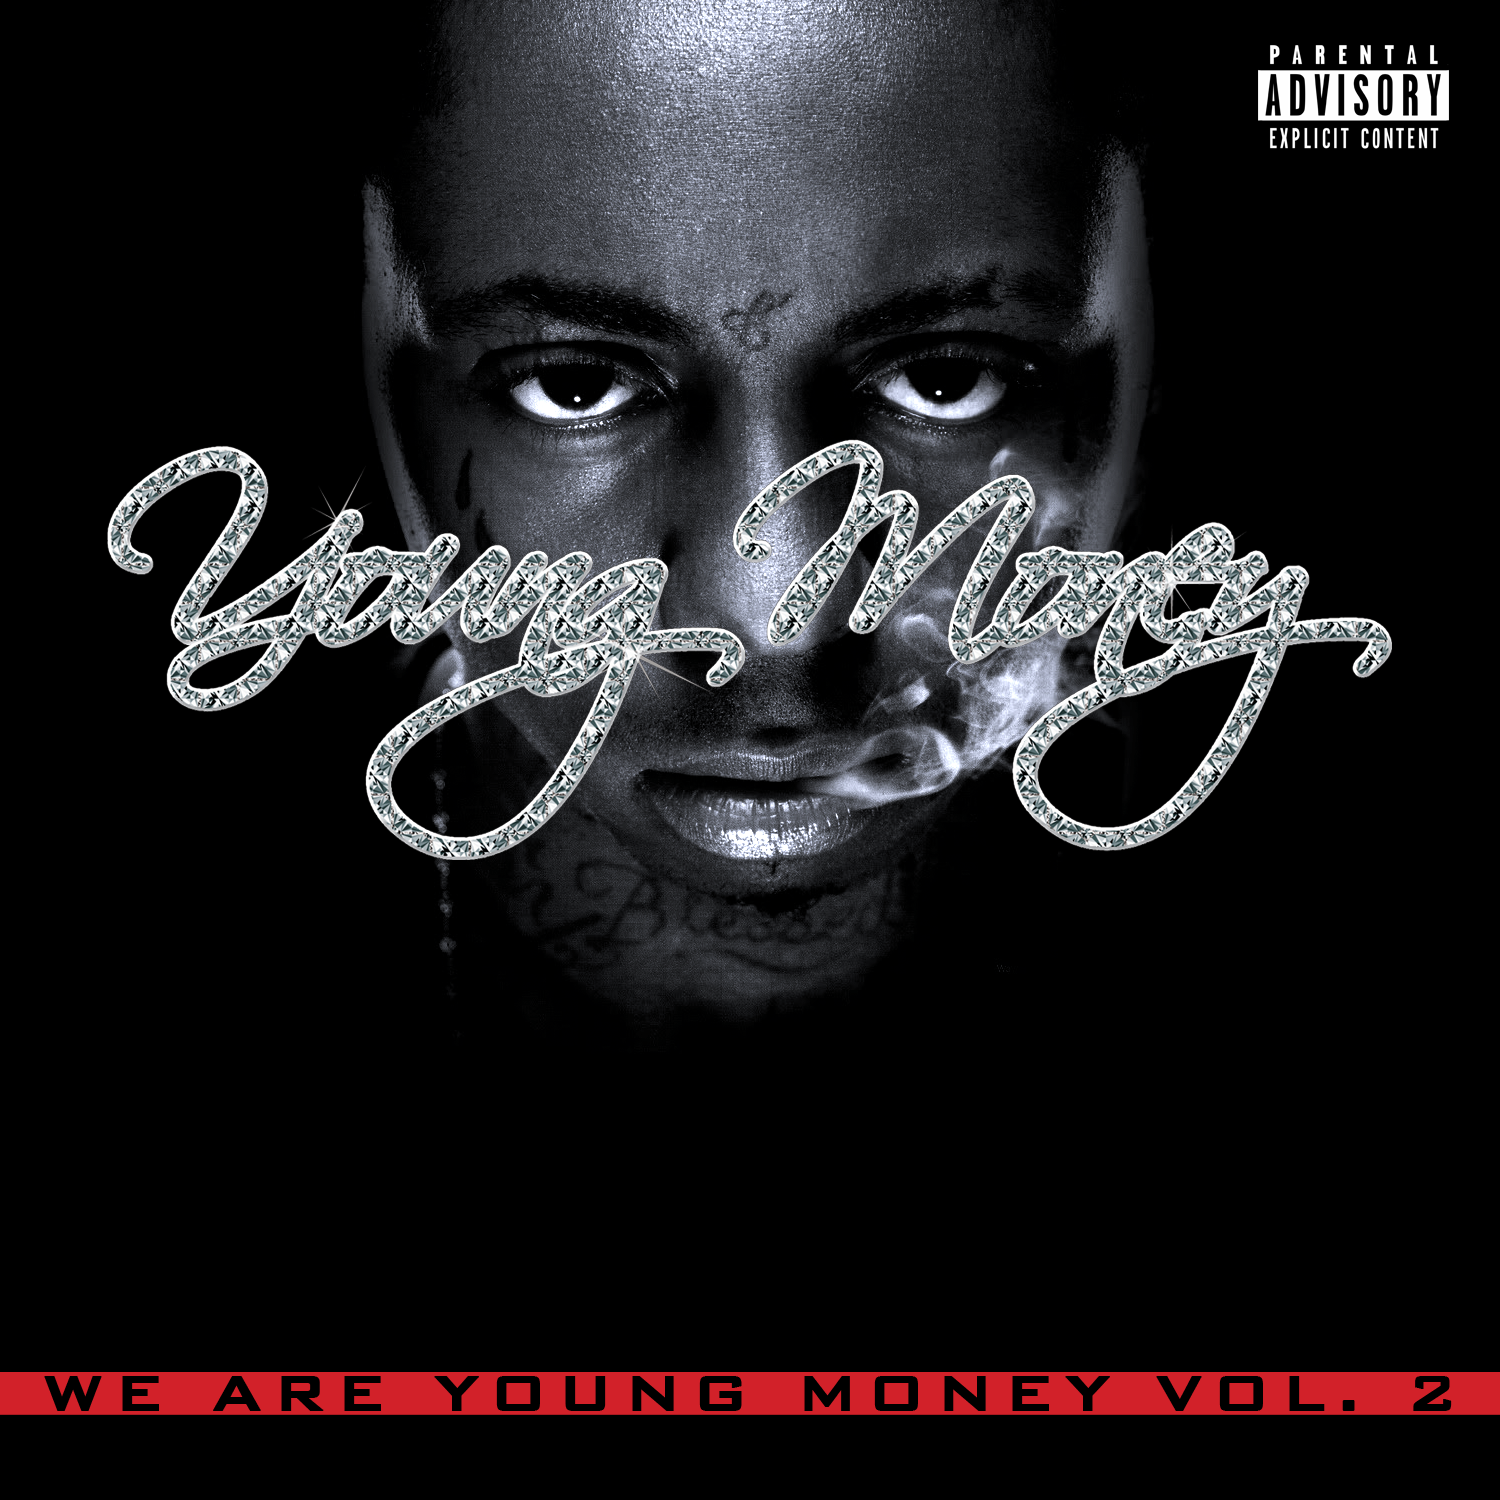 We Are Young Money Vol. 2 Cover (Unifinished)